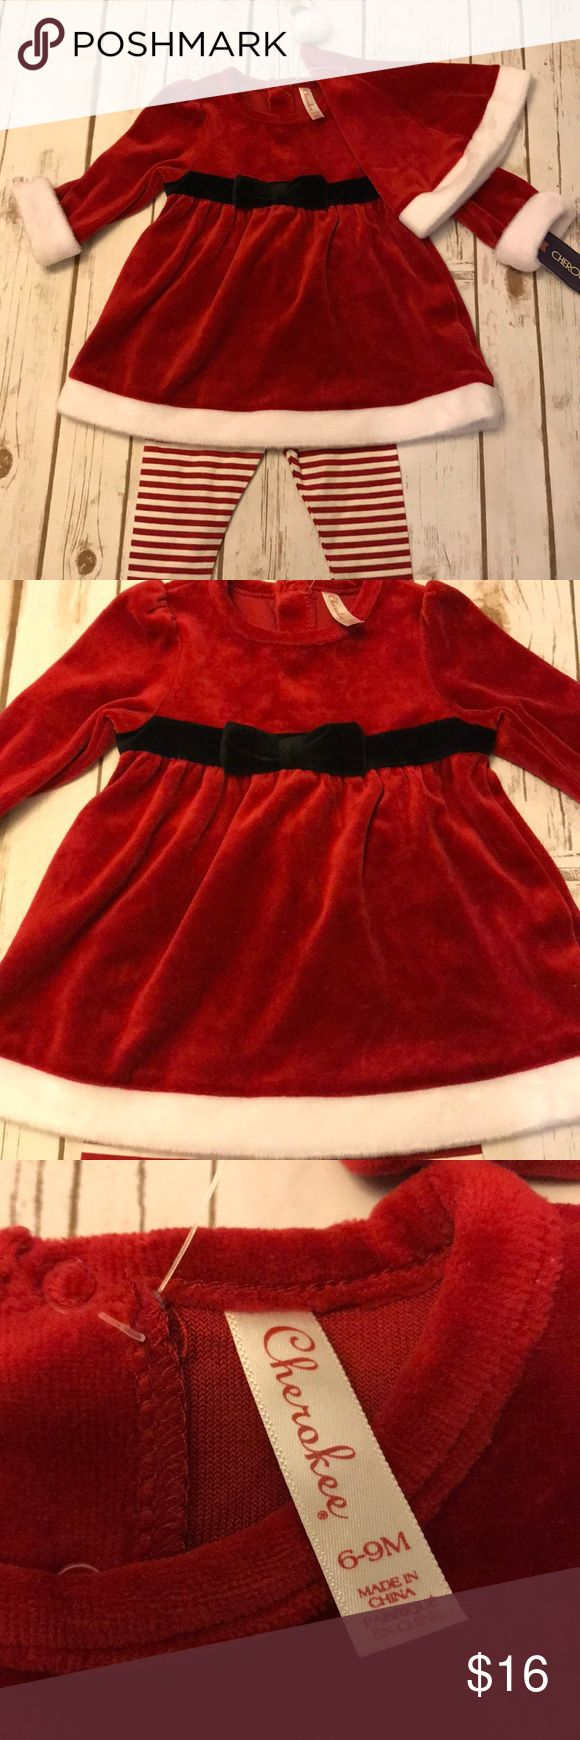 Baby Girl Cherokee Brand Mrs Clause Christmas Set NWT! Cherokee brand sized 6-9 months per tags. See last photo of tag for recommended size of baby for 6-9 month sizing. Mrs Clause Holiday Dress and hat are a velour/Velvet type material with matching white and red striped leggings. Dress has snap closure at back neck area of dress. Smoke free home. Cherokee Matching Sets